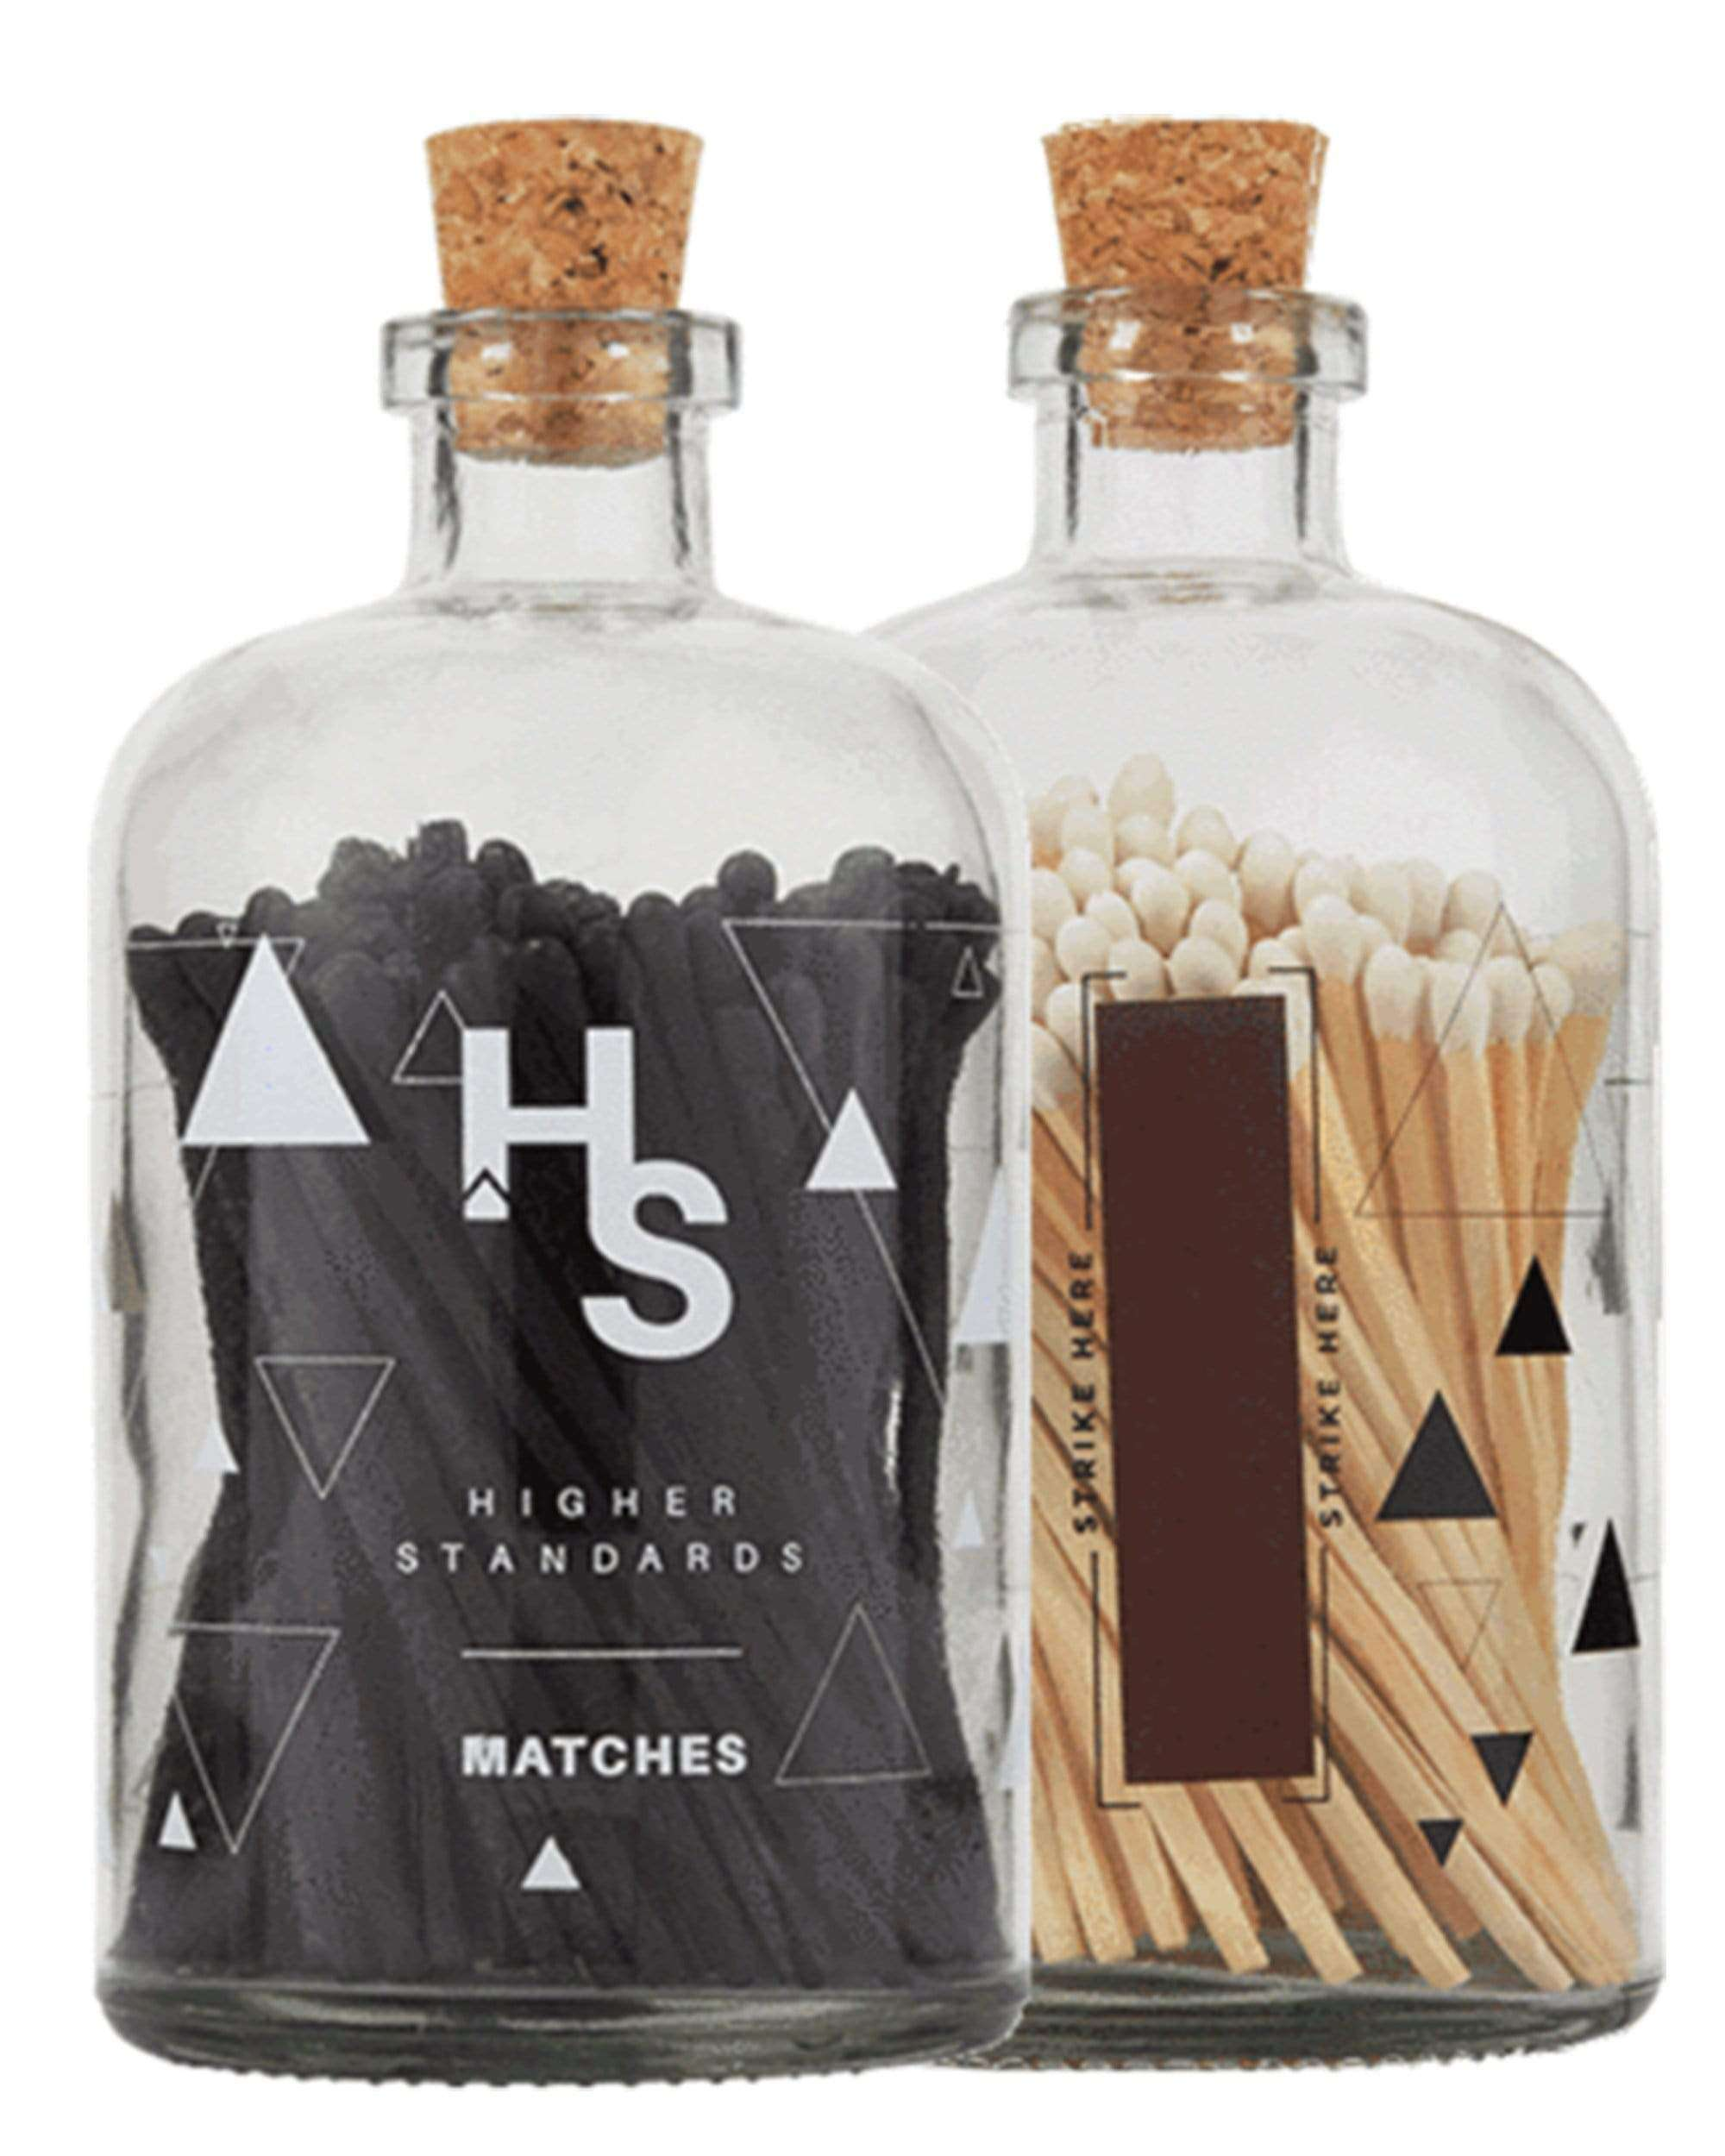 Large Match Bottle